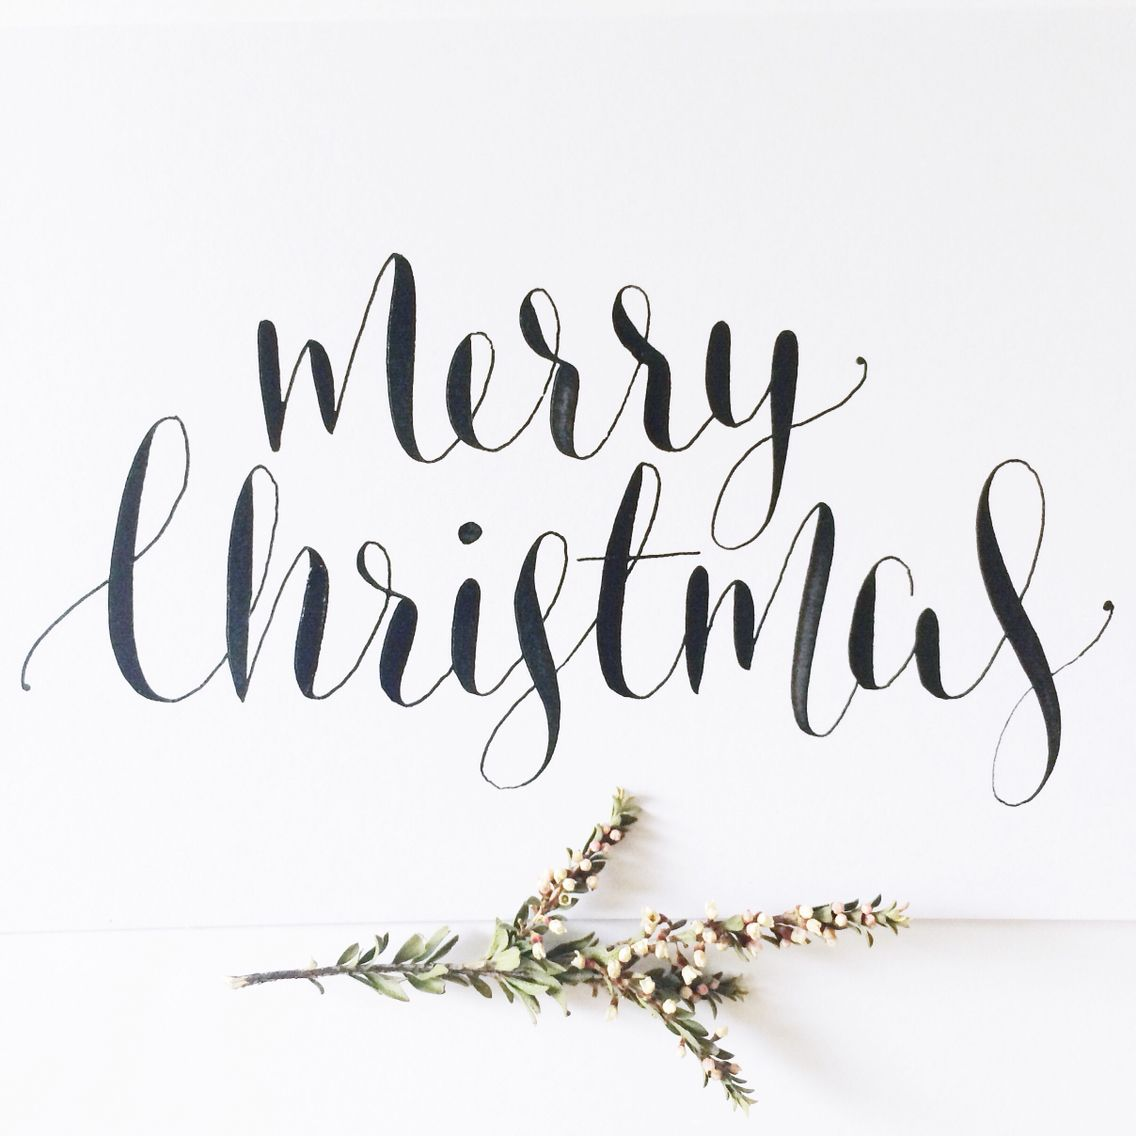 Merry Christmas In Cursive.Merry Christmas Calligraphy Www Willowandink Com Au